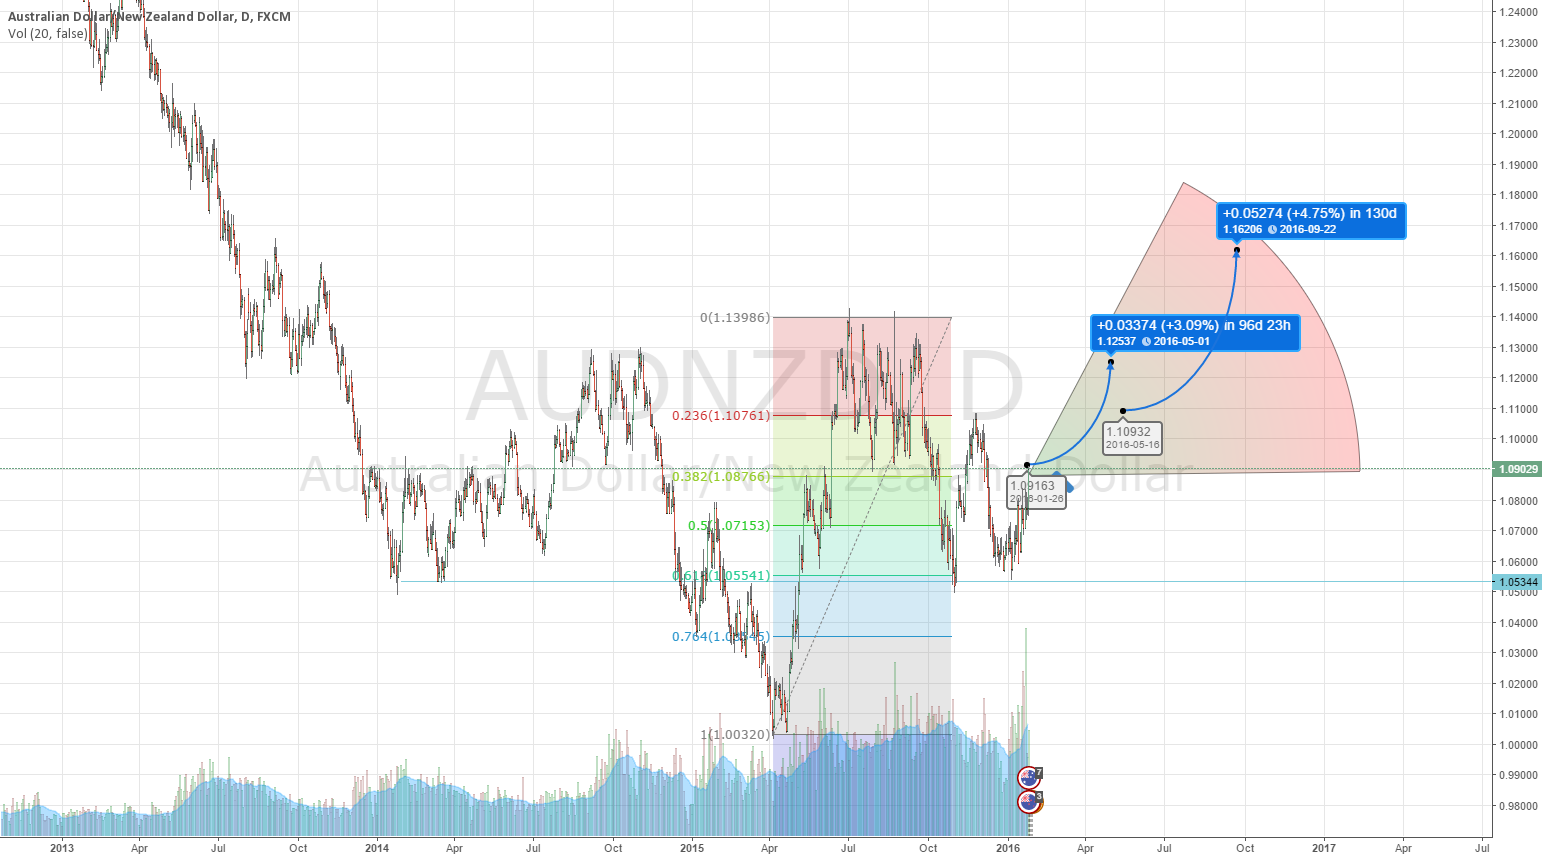 AUD Will Outperform NZD